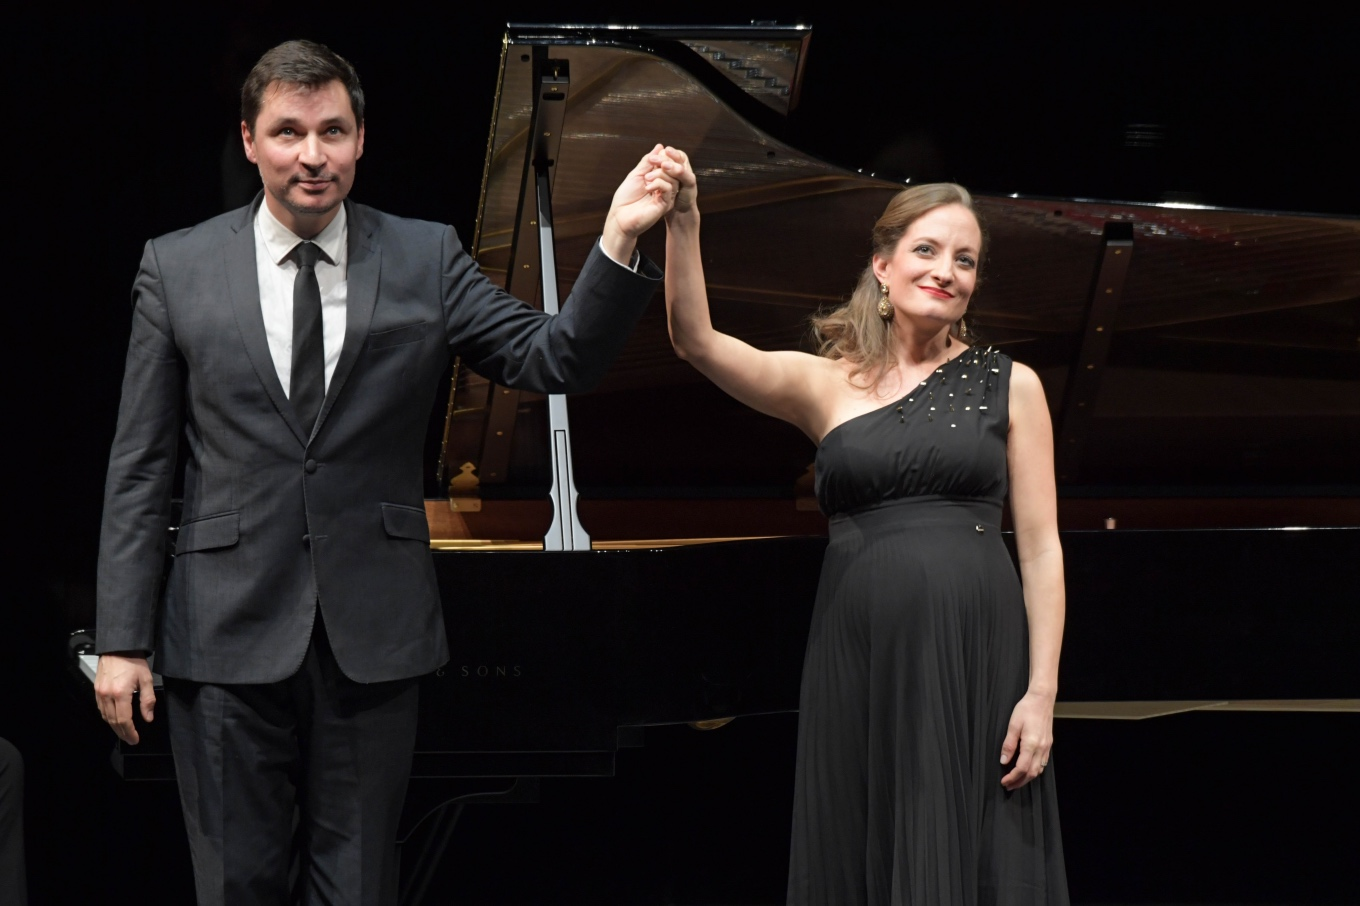 Christiane Karg (soprano) & Simon Lepper Ruf (piano) in recital with the Frankfurter Liederabend, 2018. Photo: Barbara Aumüller.